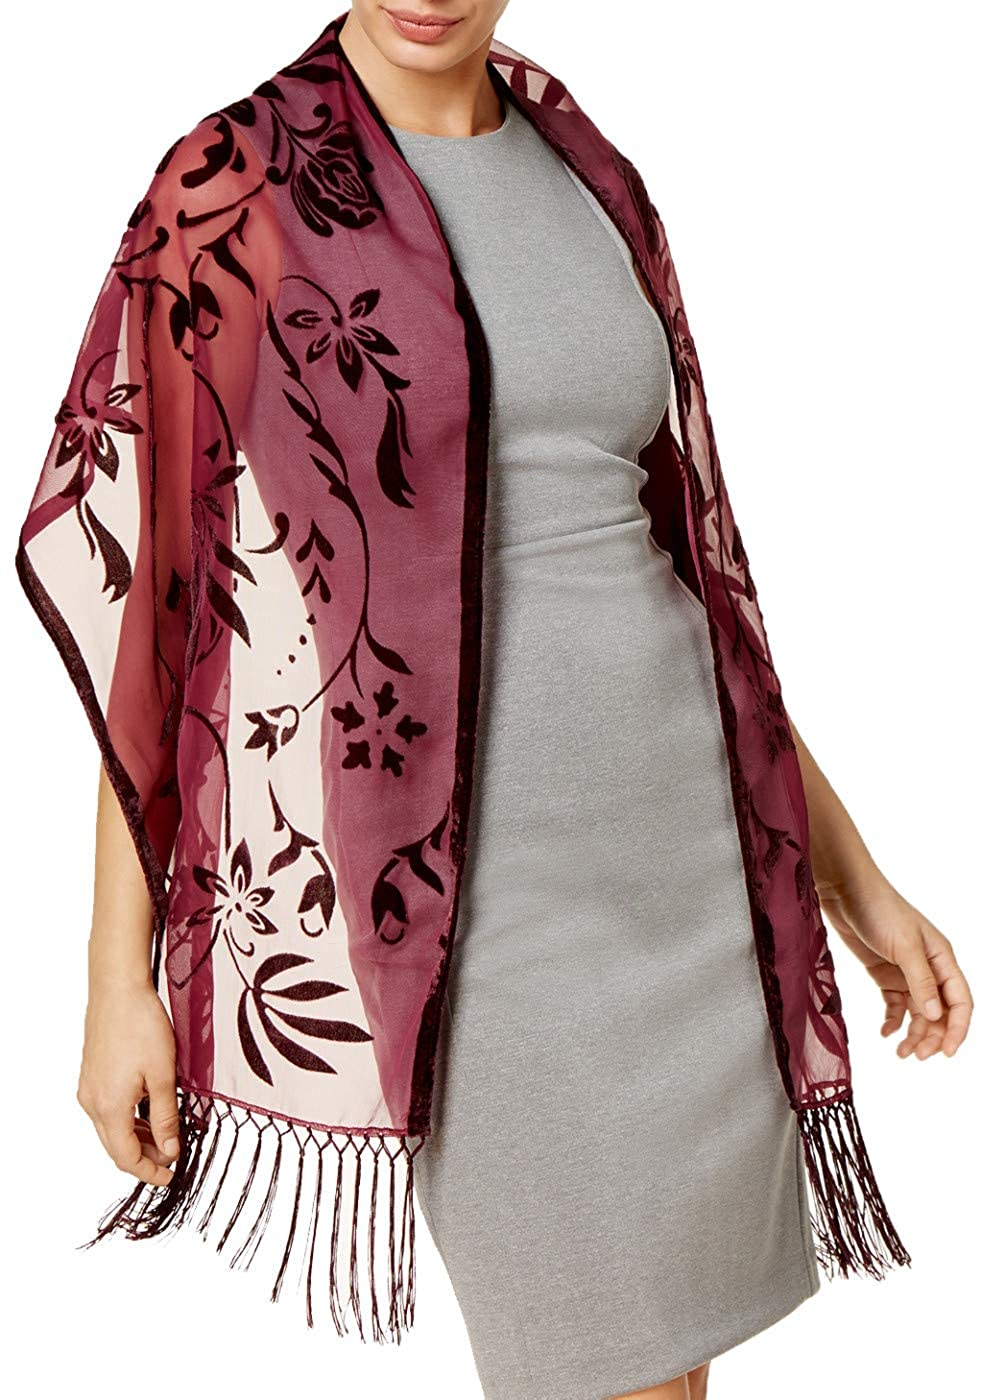 5fbc4b4dae55 INC International Concepts Women's Burgundy Floral Scroll Evening Wrap  Scarf at Amazon Women's Clothing store: